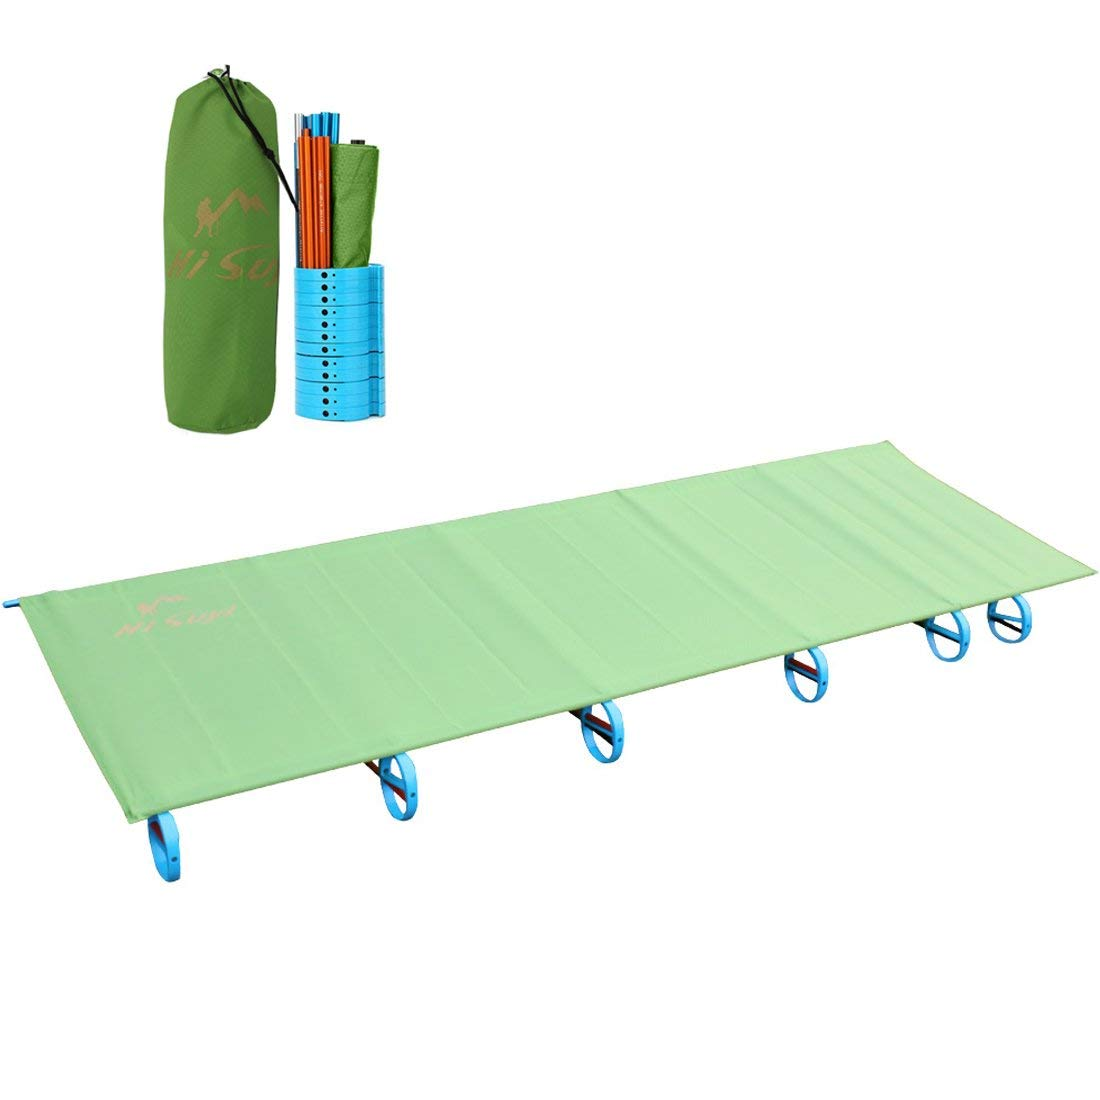 Kids Rollaway Bed Cheap Aluminium Folding Bed Find Aluminium Folding Bed Deals On